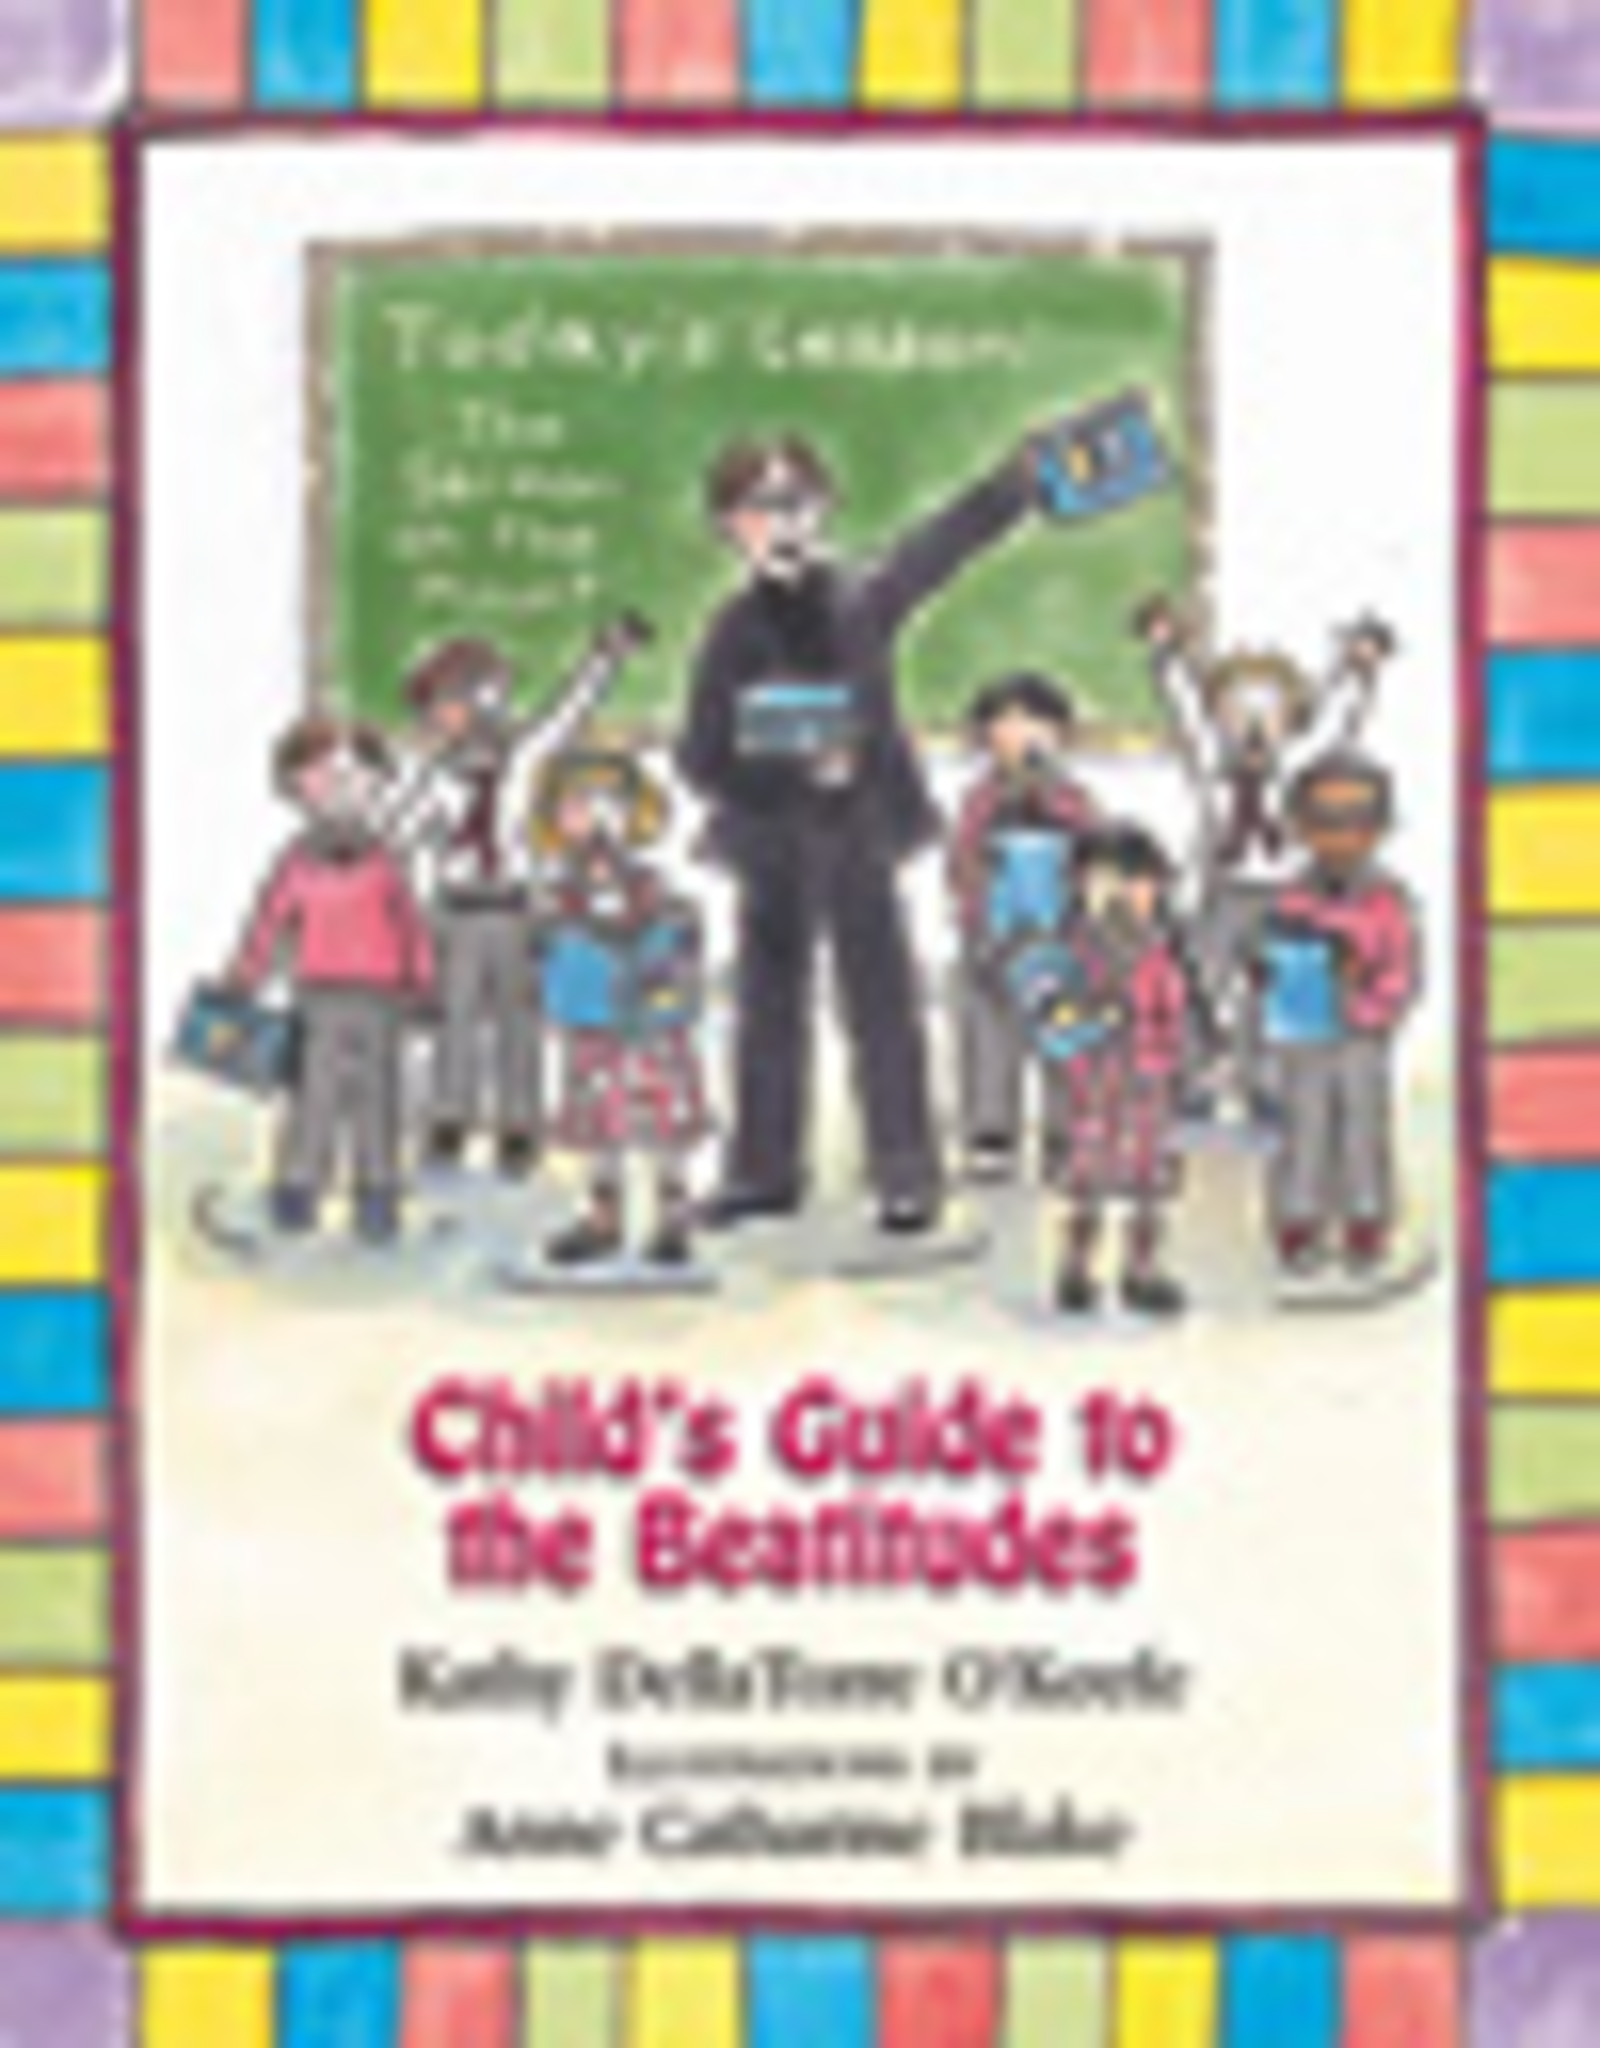 Paulist Press Child's Guide to the Beatitudes, by Kathy DellaTorre O'Keefe (hardcover)